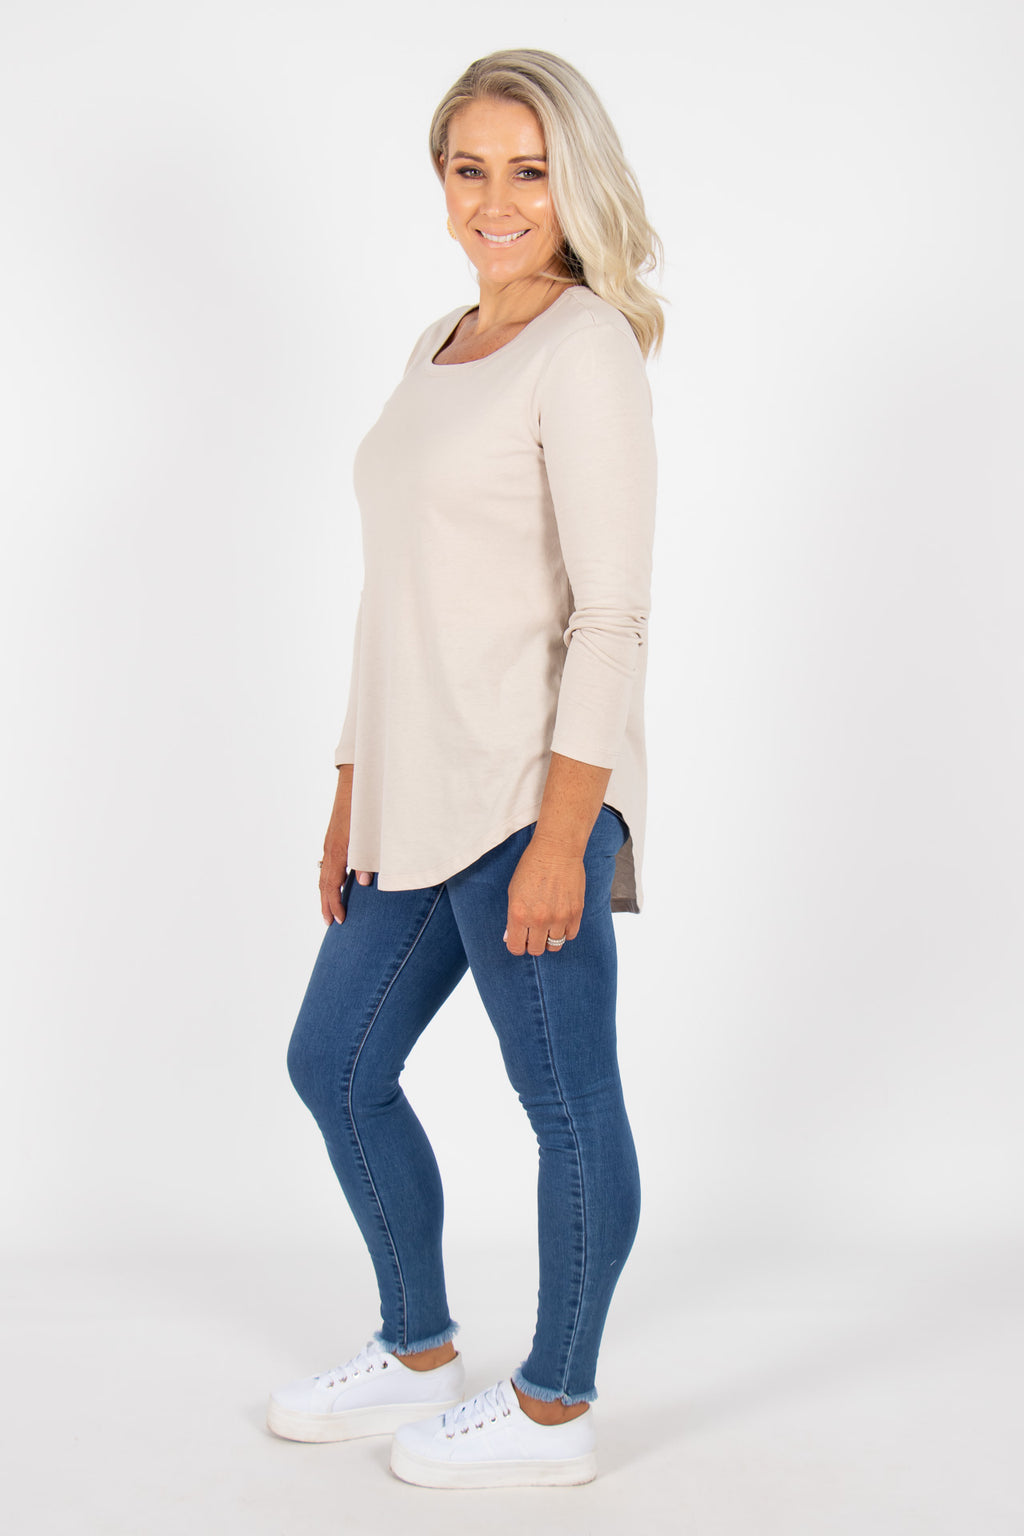 Megan Long Sleeve Top in Cashew